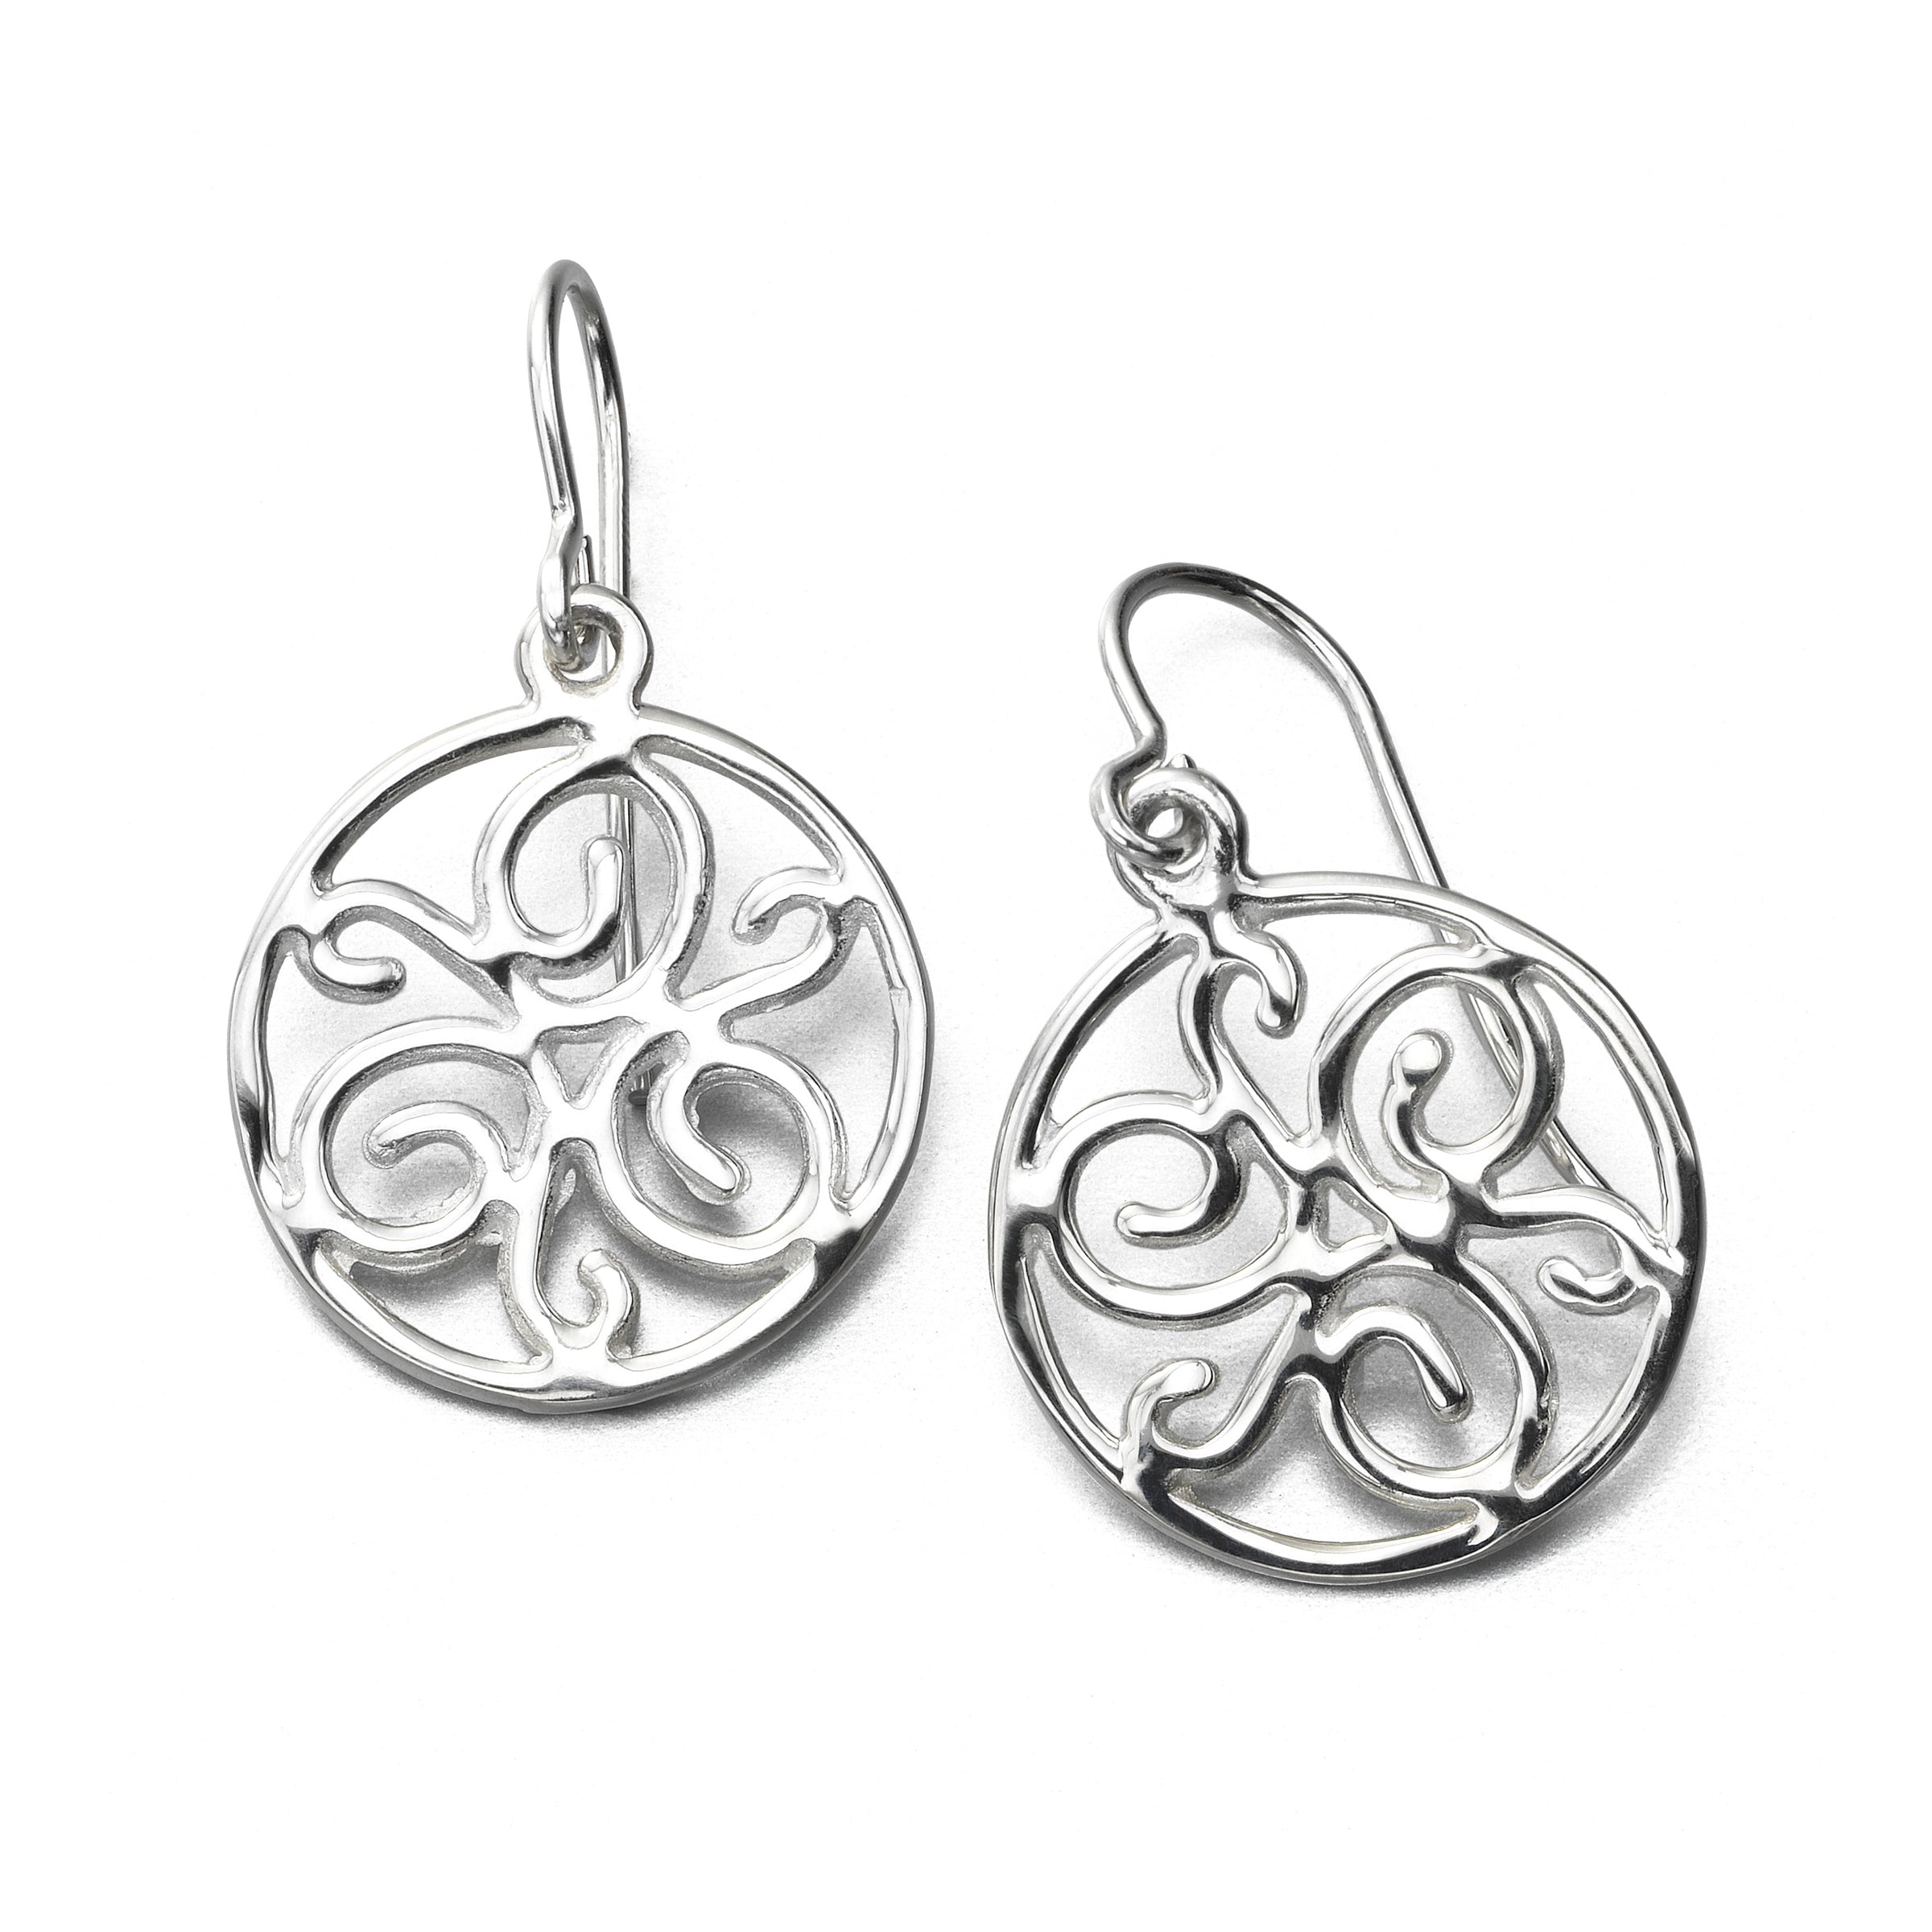 Circle Scrolled Drop Earring, Sterling Silver by Sharelli